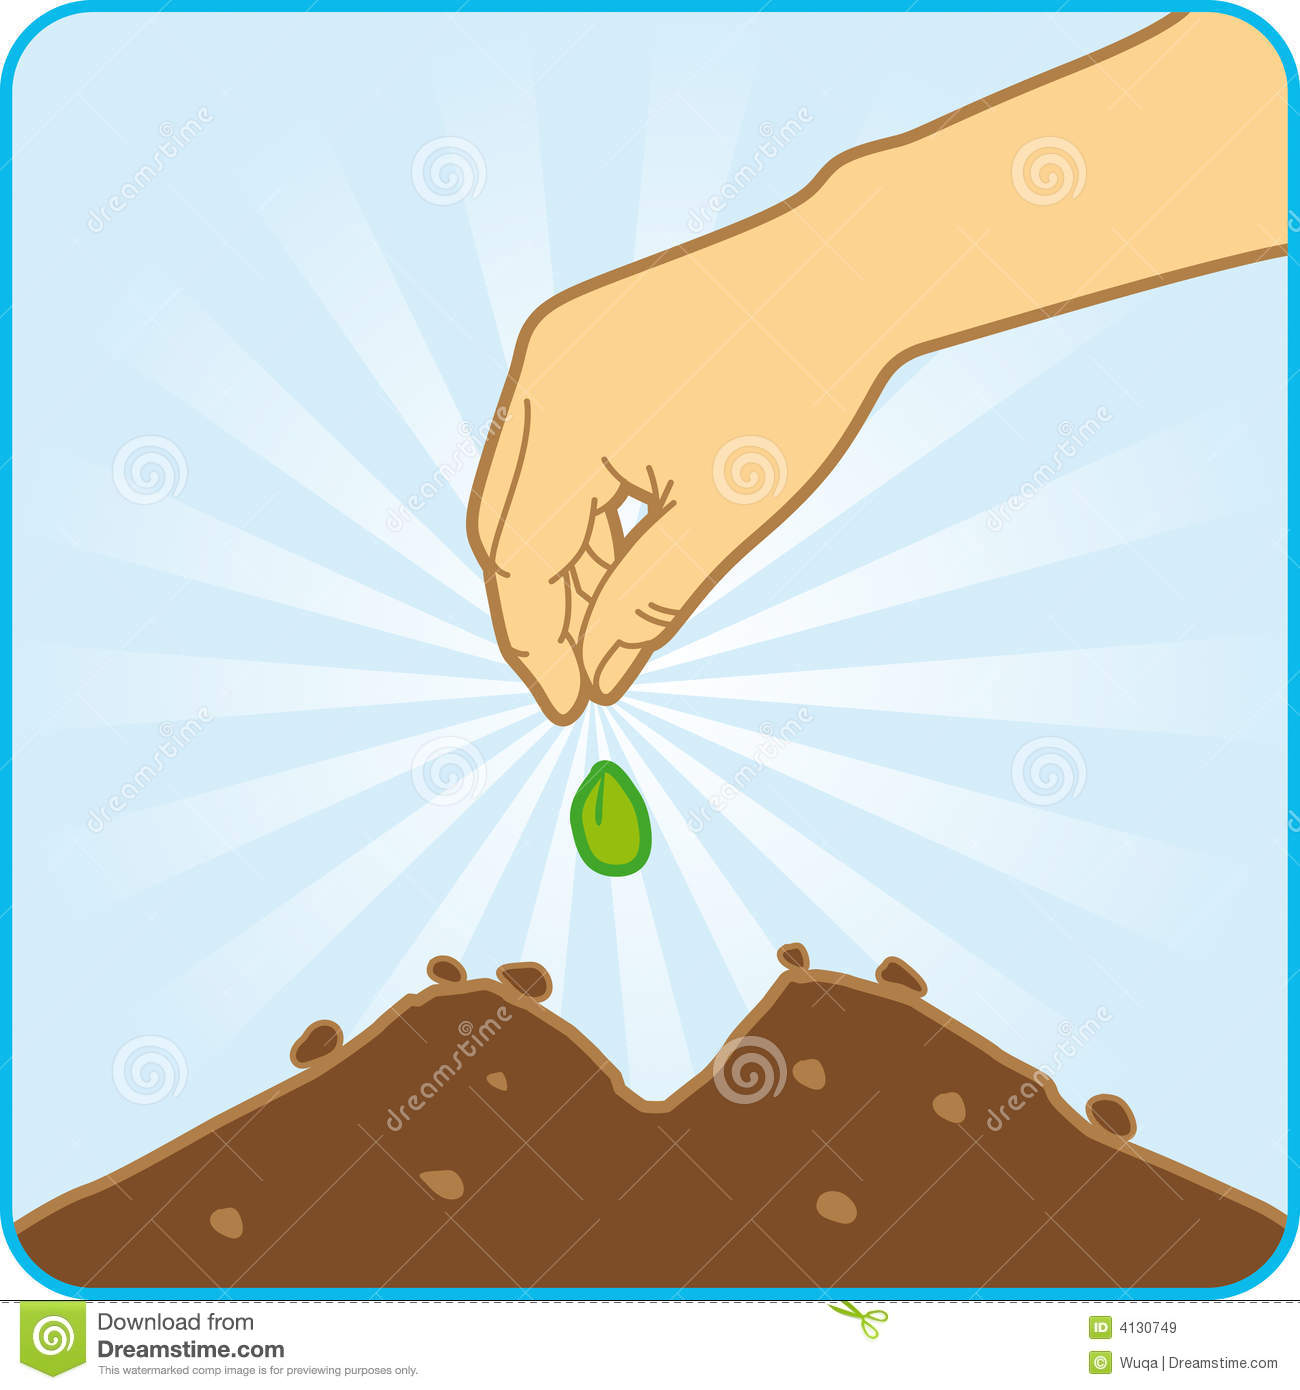 Planting Seeds Stock Illustrations.